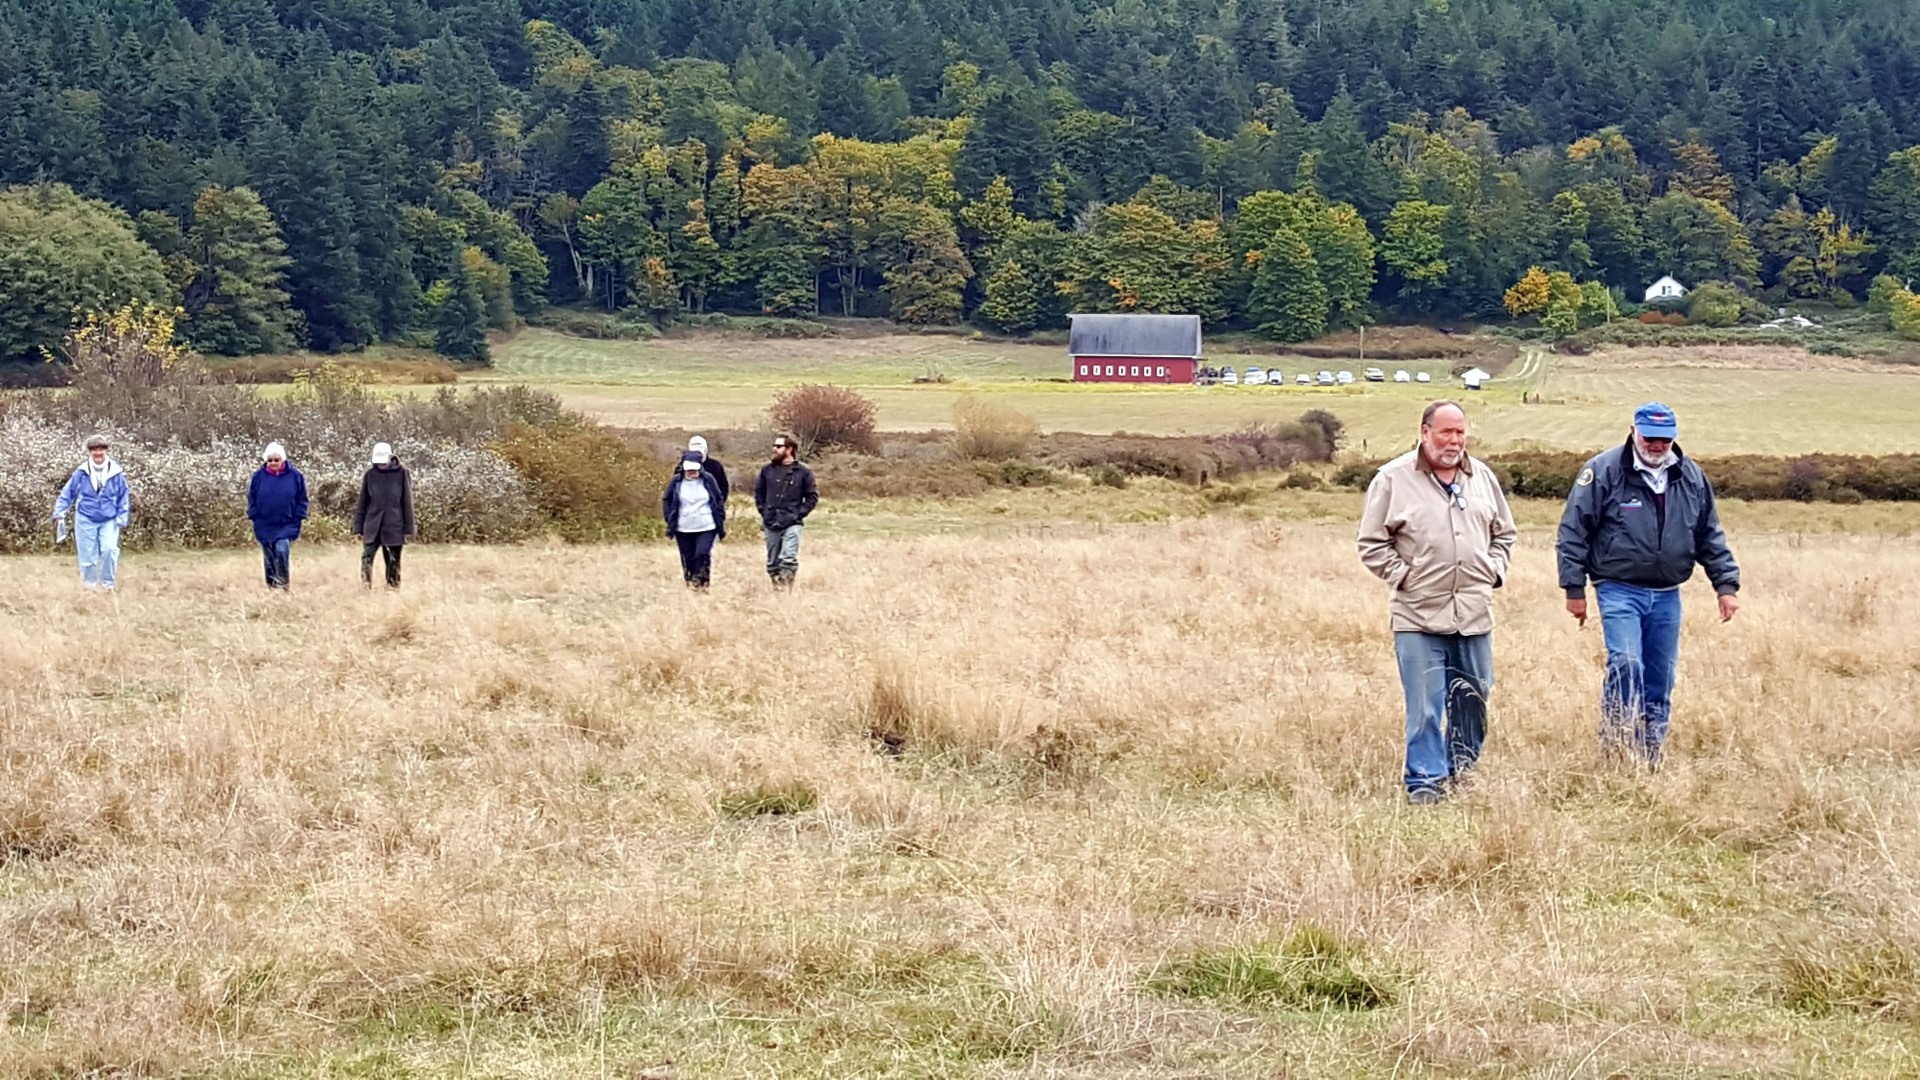 Community members tour Guemes Valley property, October 2017. Photograph credit: Skagit Land Trust staff.